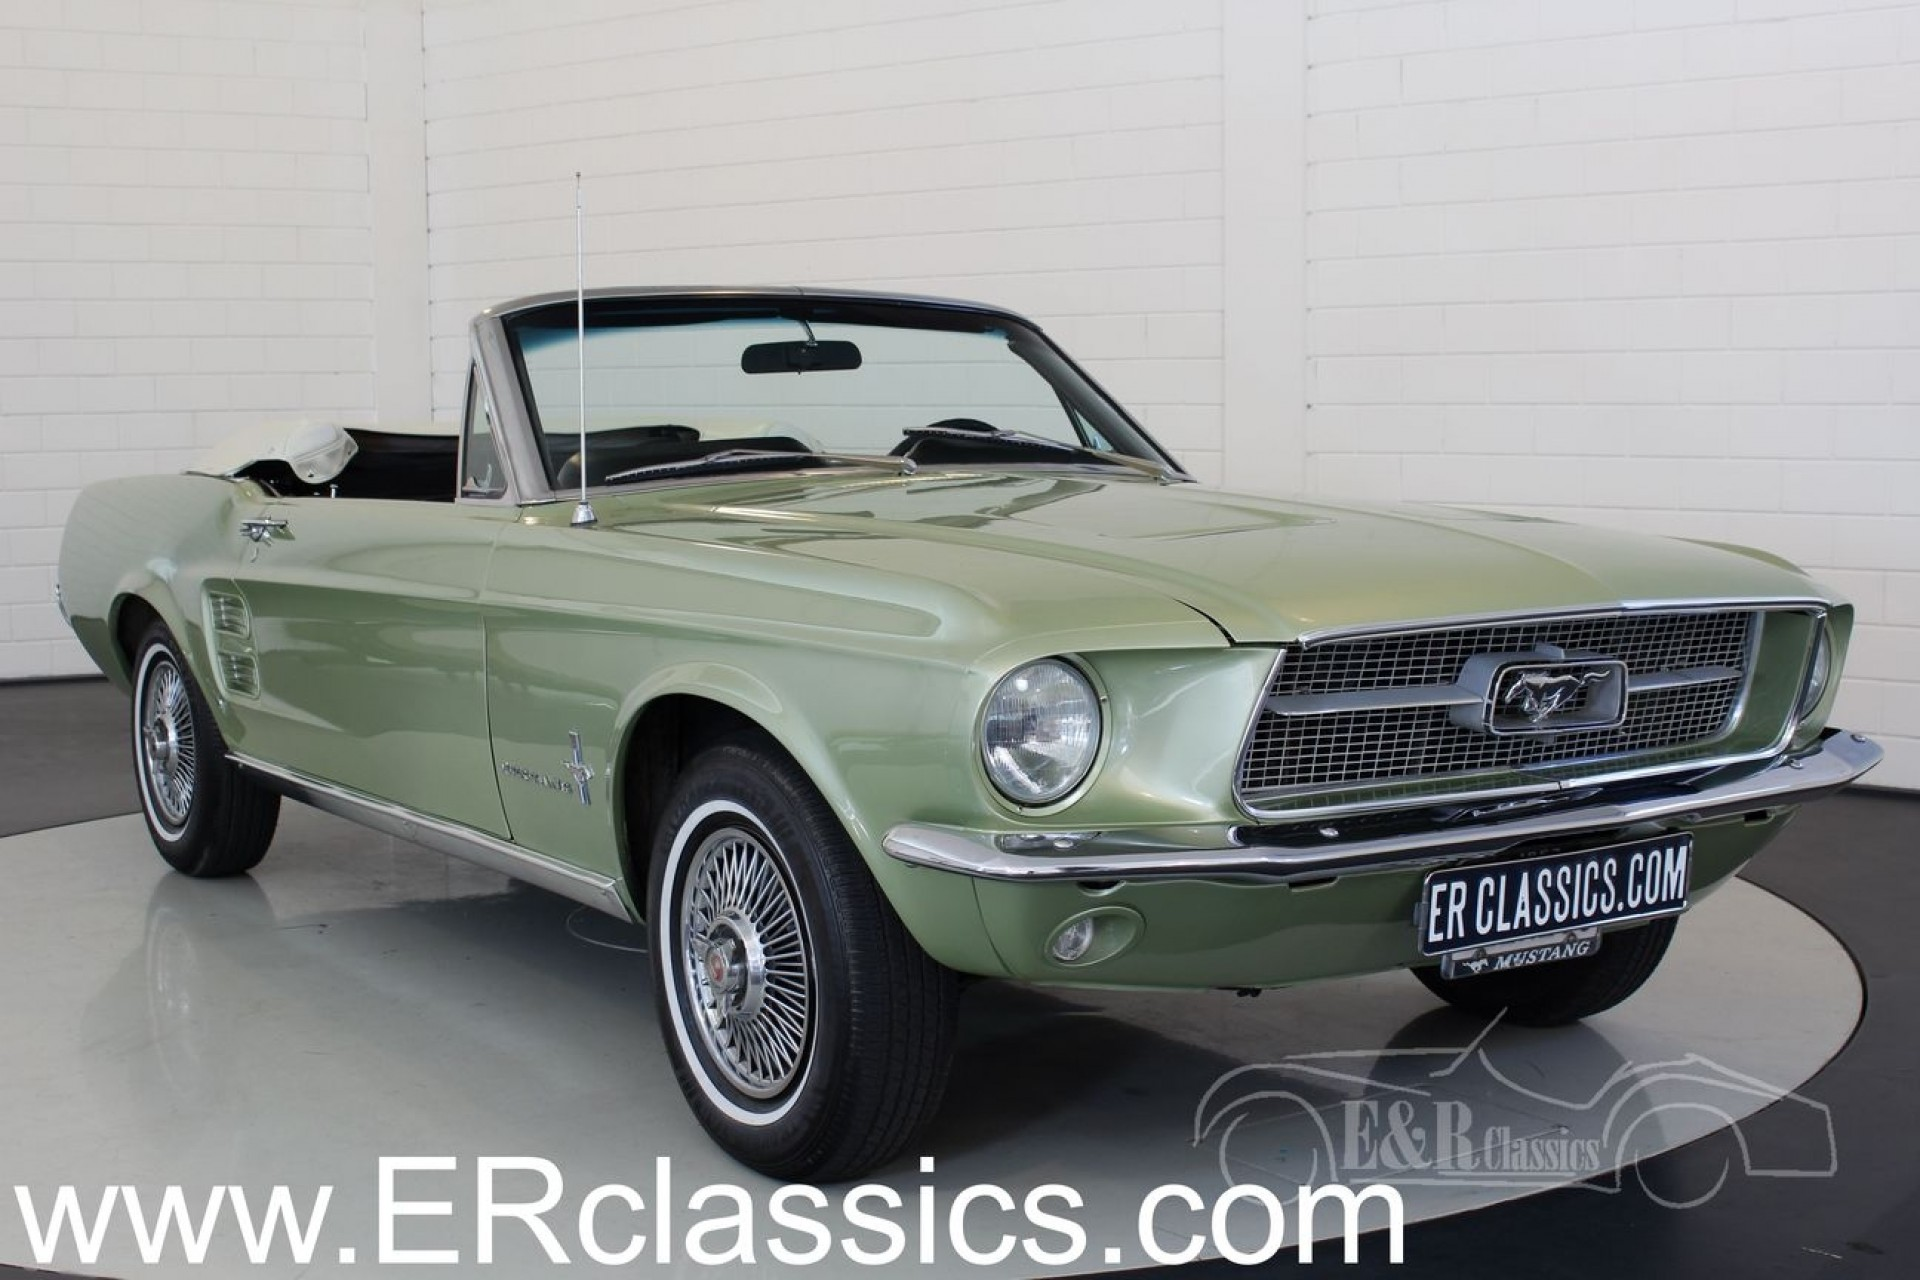 ford mustang cabriolet 1967 for sale at erclassics. Black Bedroom Furniture Sets. Home Design Ideas